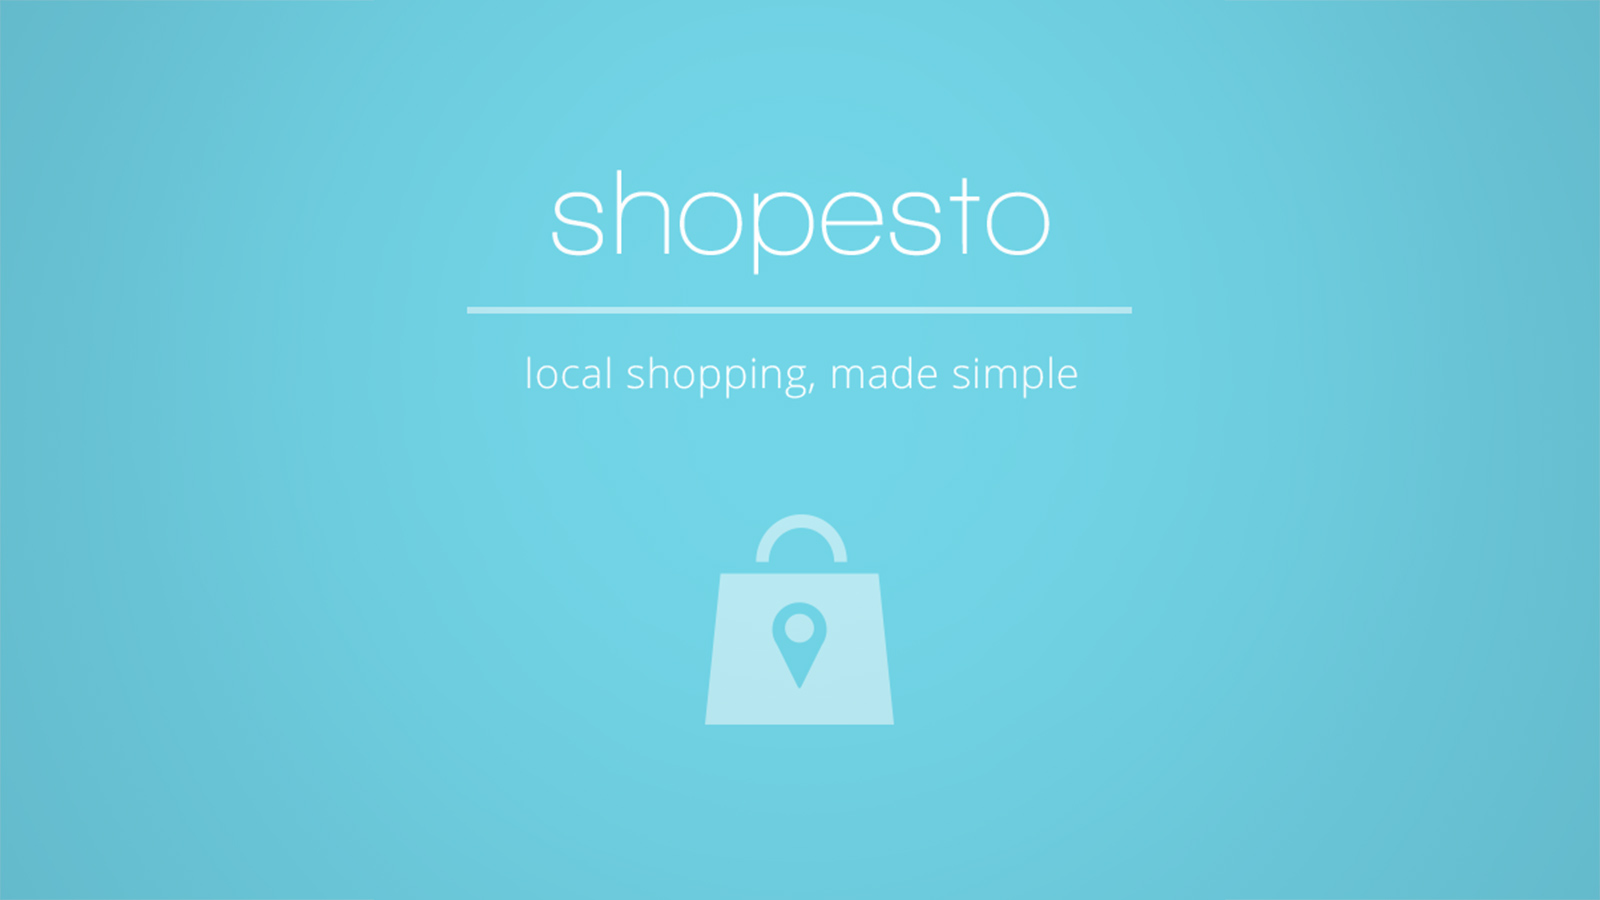 shopesto - local shopping, made simple